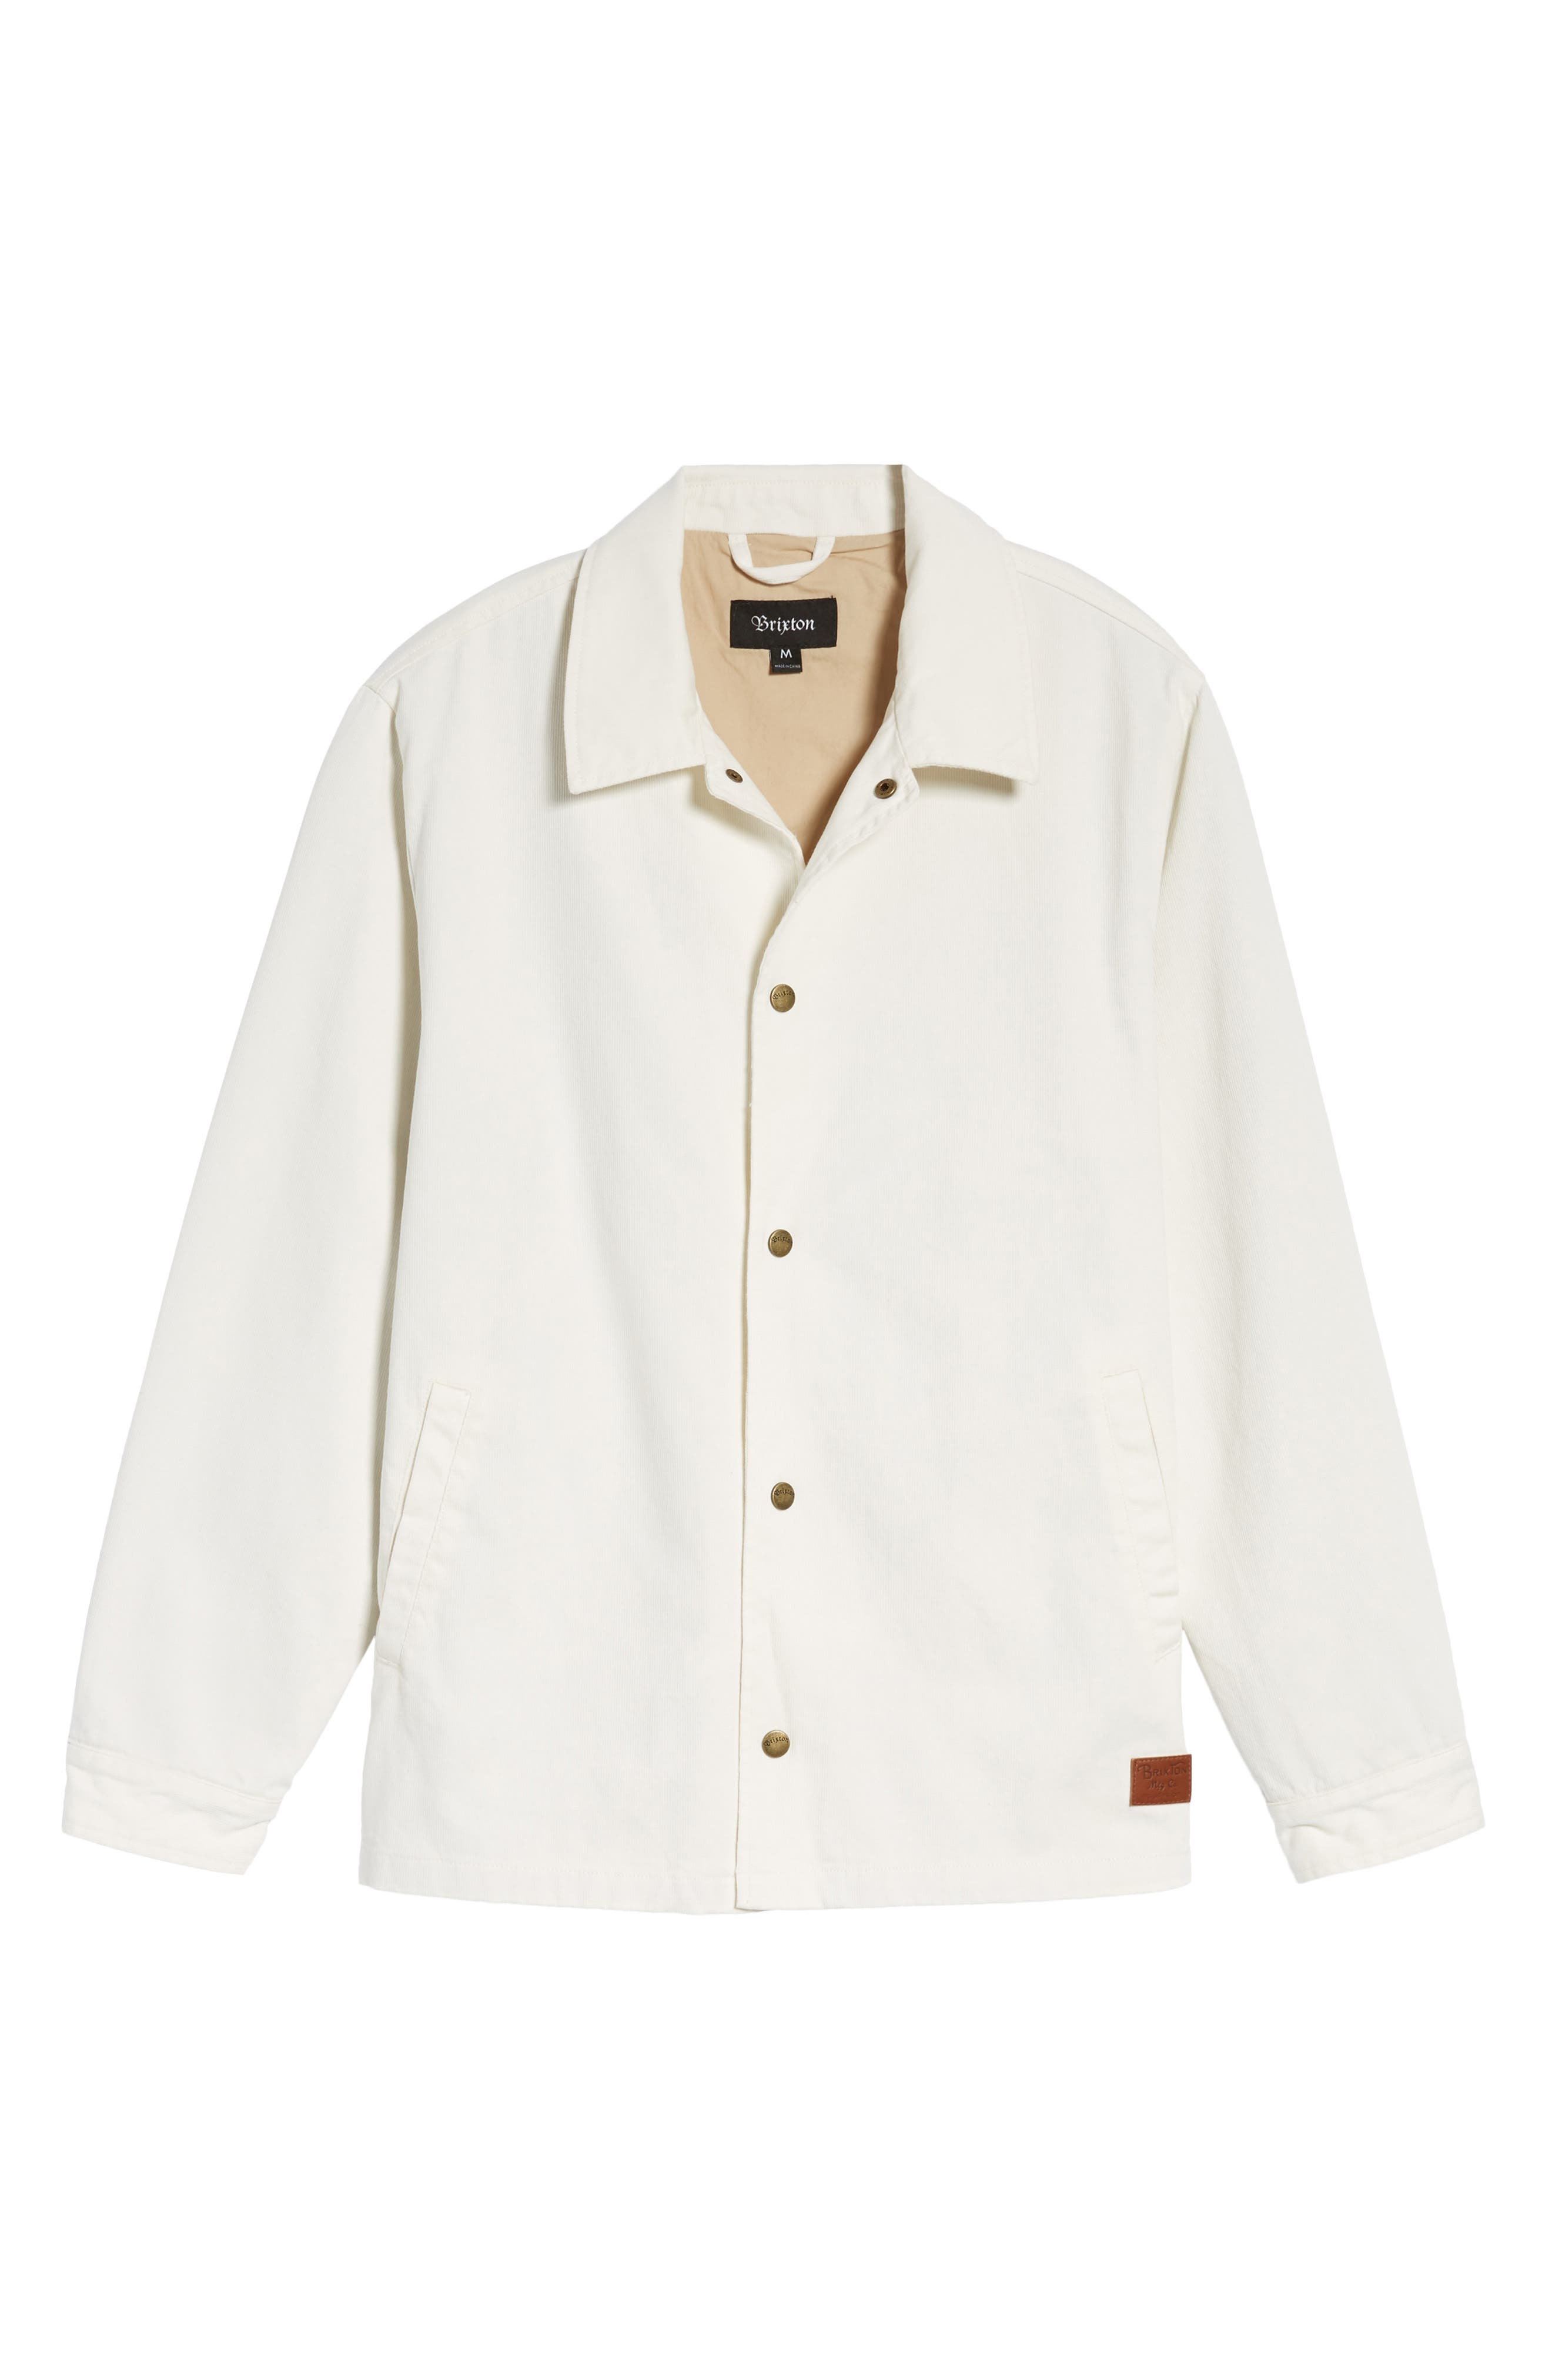 Wright Water Resistant Coach's Jacket,                         Main,                         color, Off White